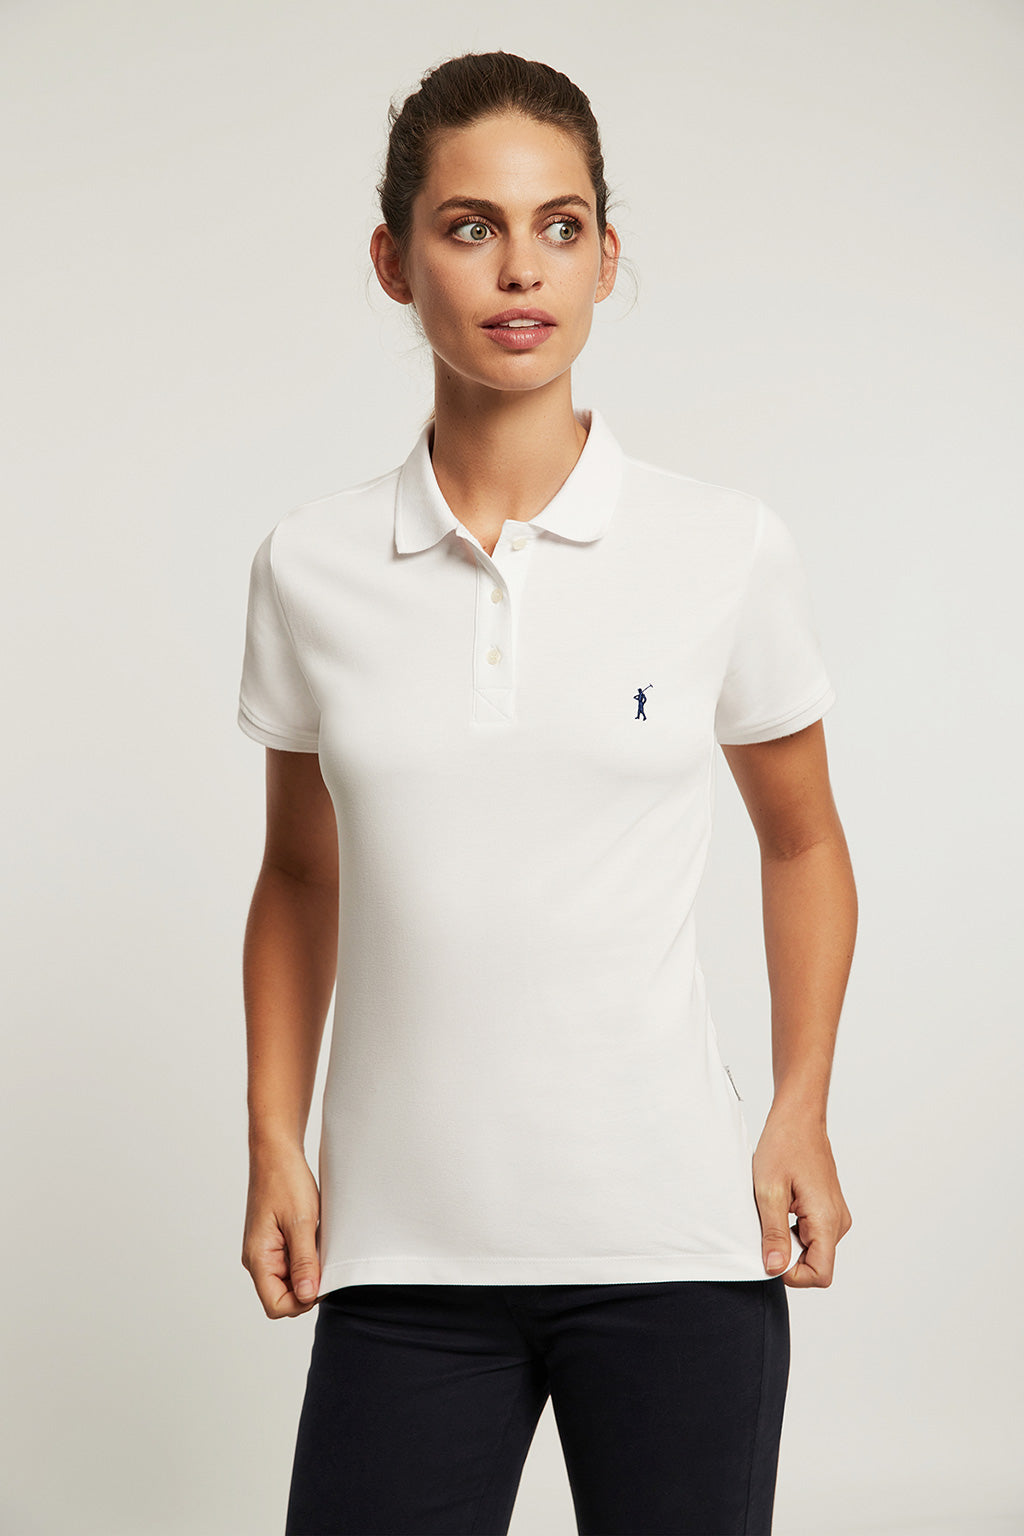 White organic cotton polo shirt